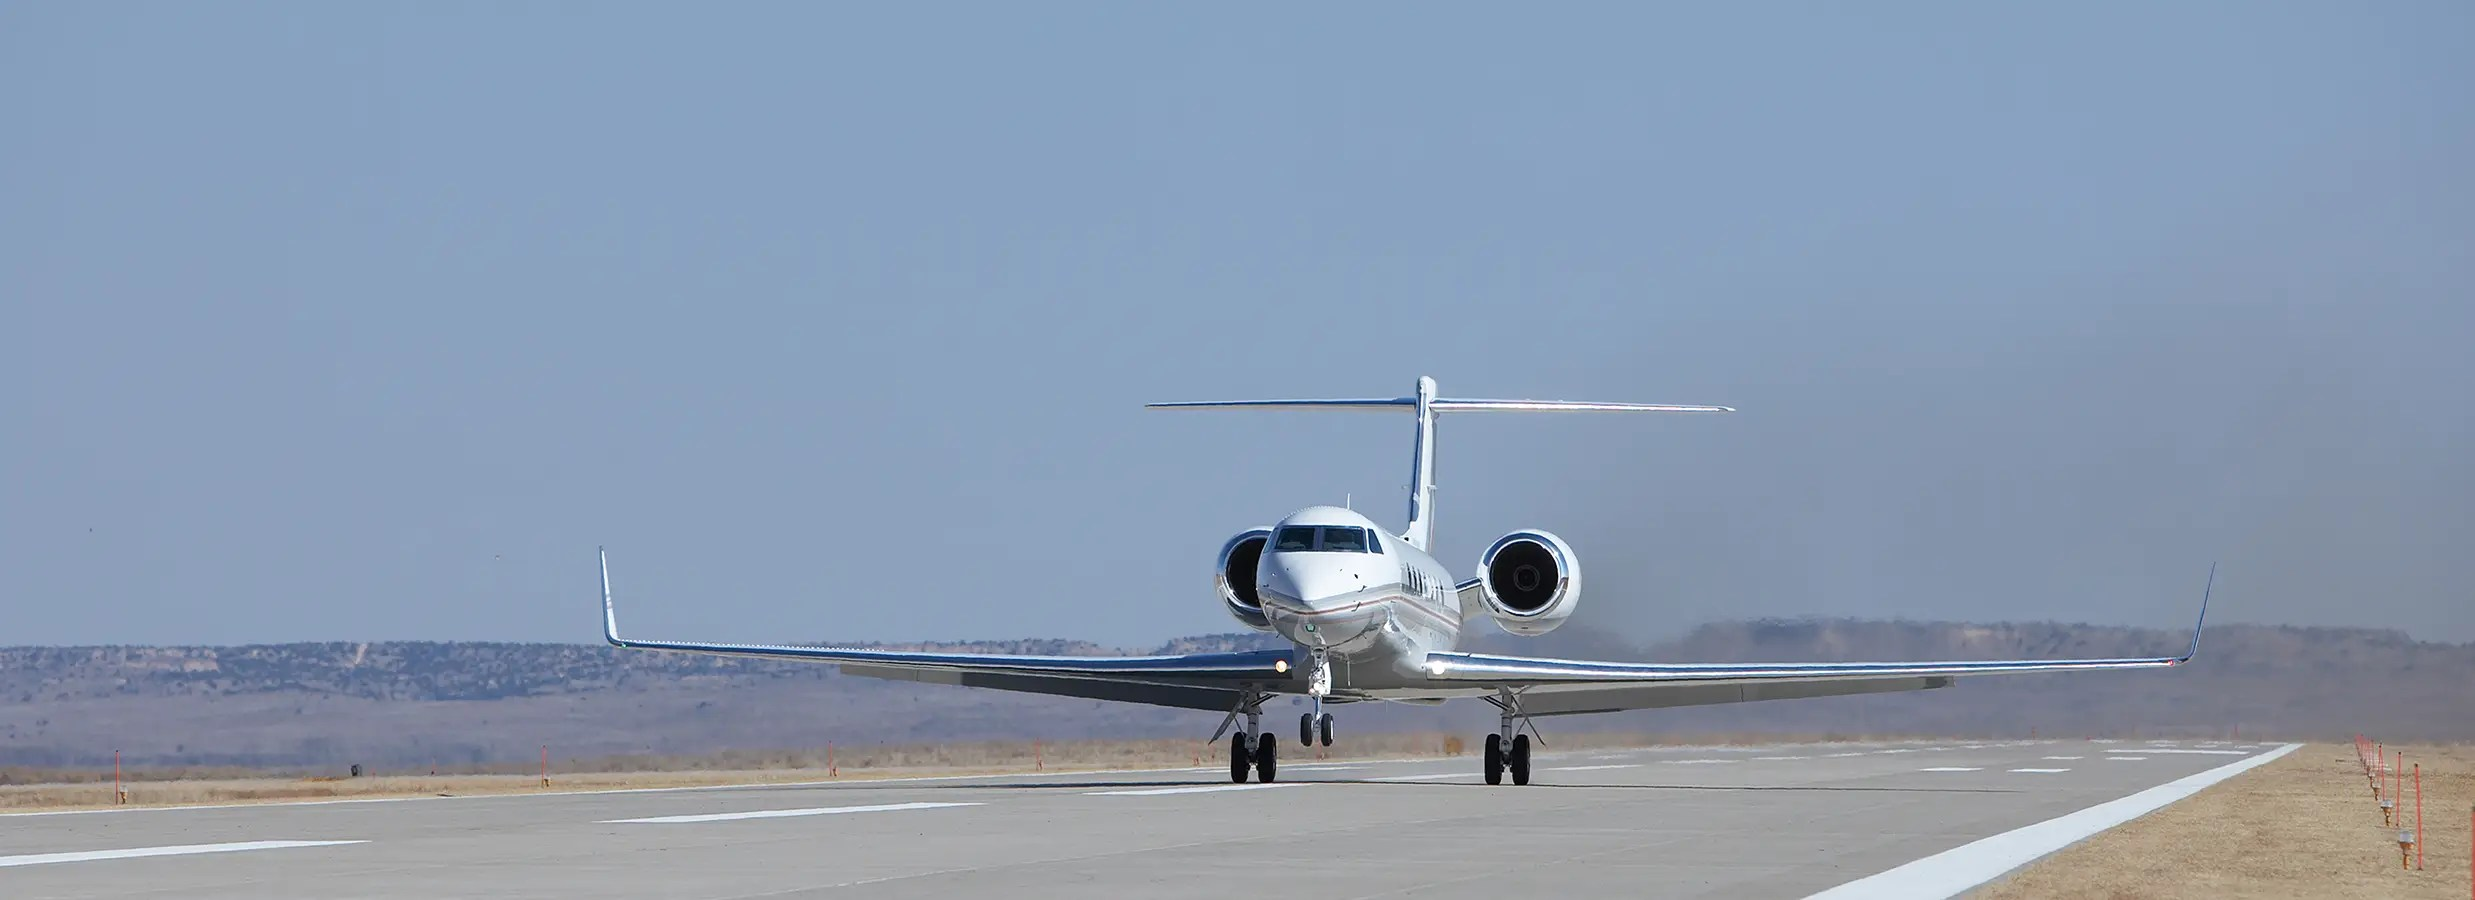 The ranch has an airport, approved by the Federal Aviation Administration, with a 52,600-square-foot concrete tarmac.